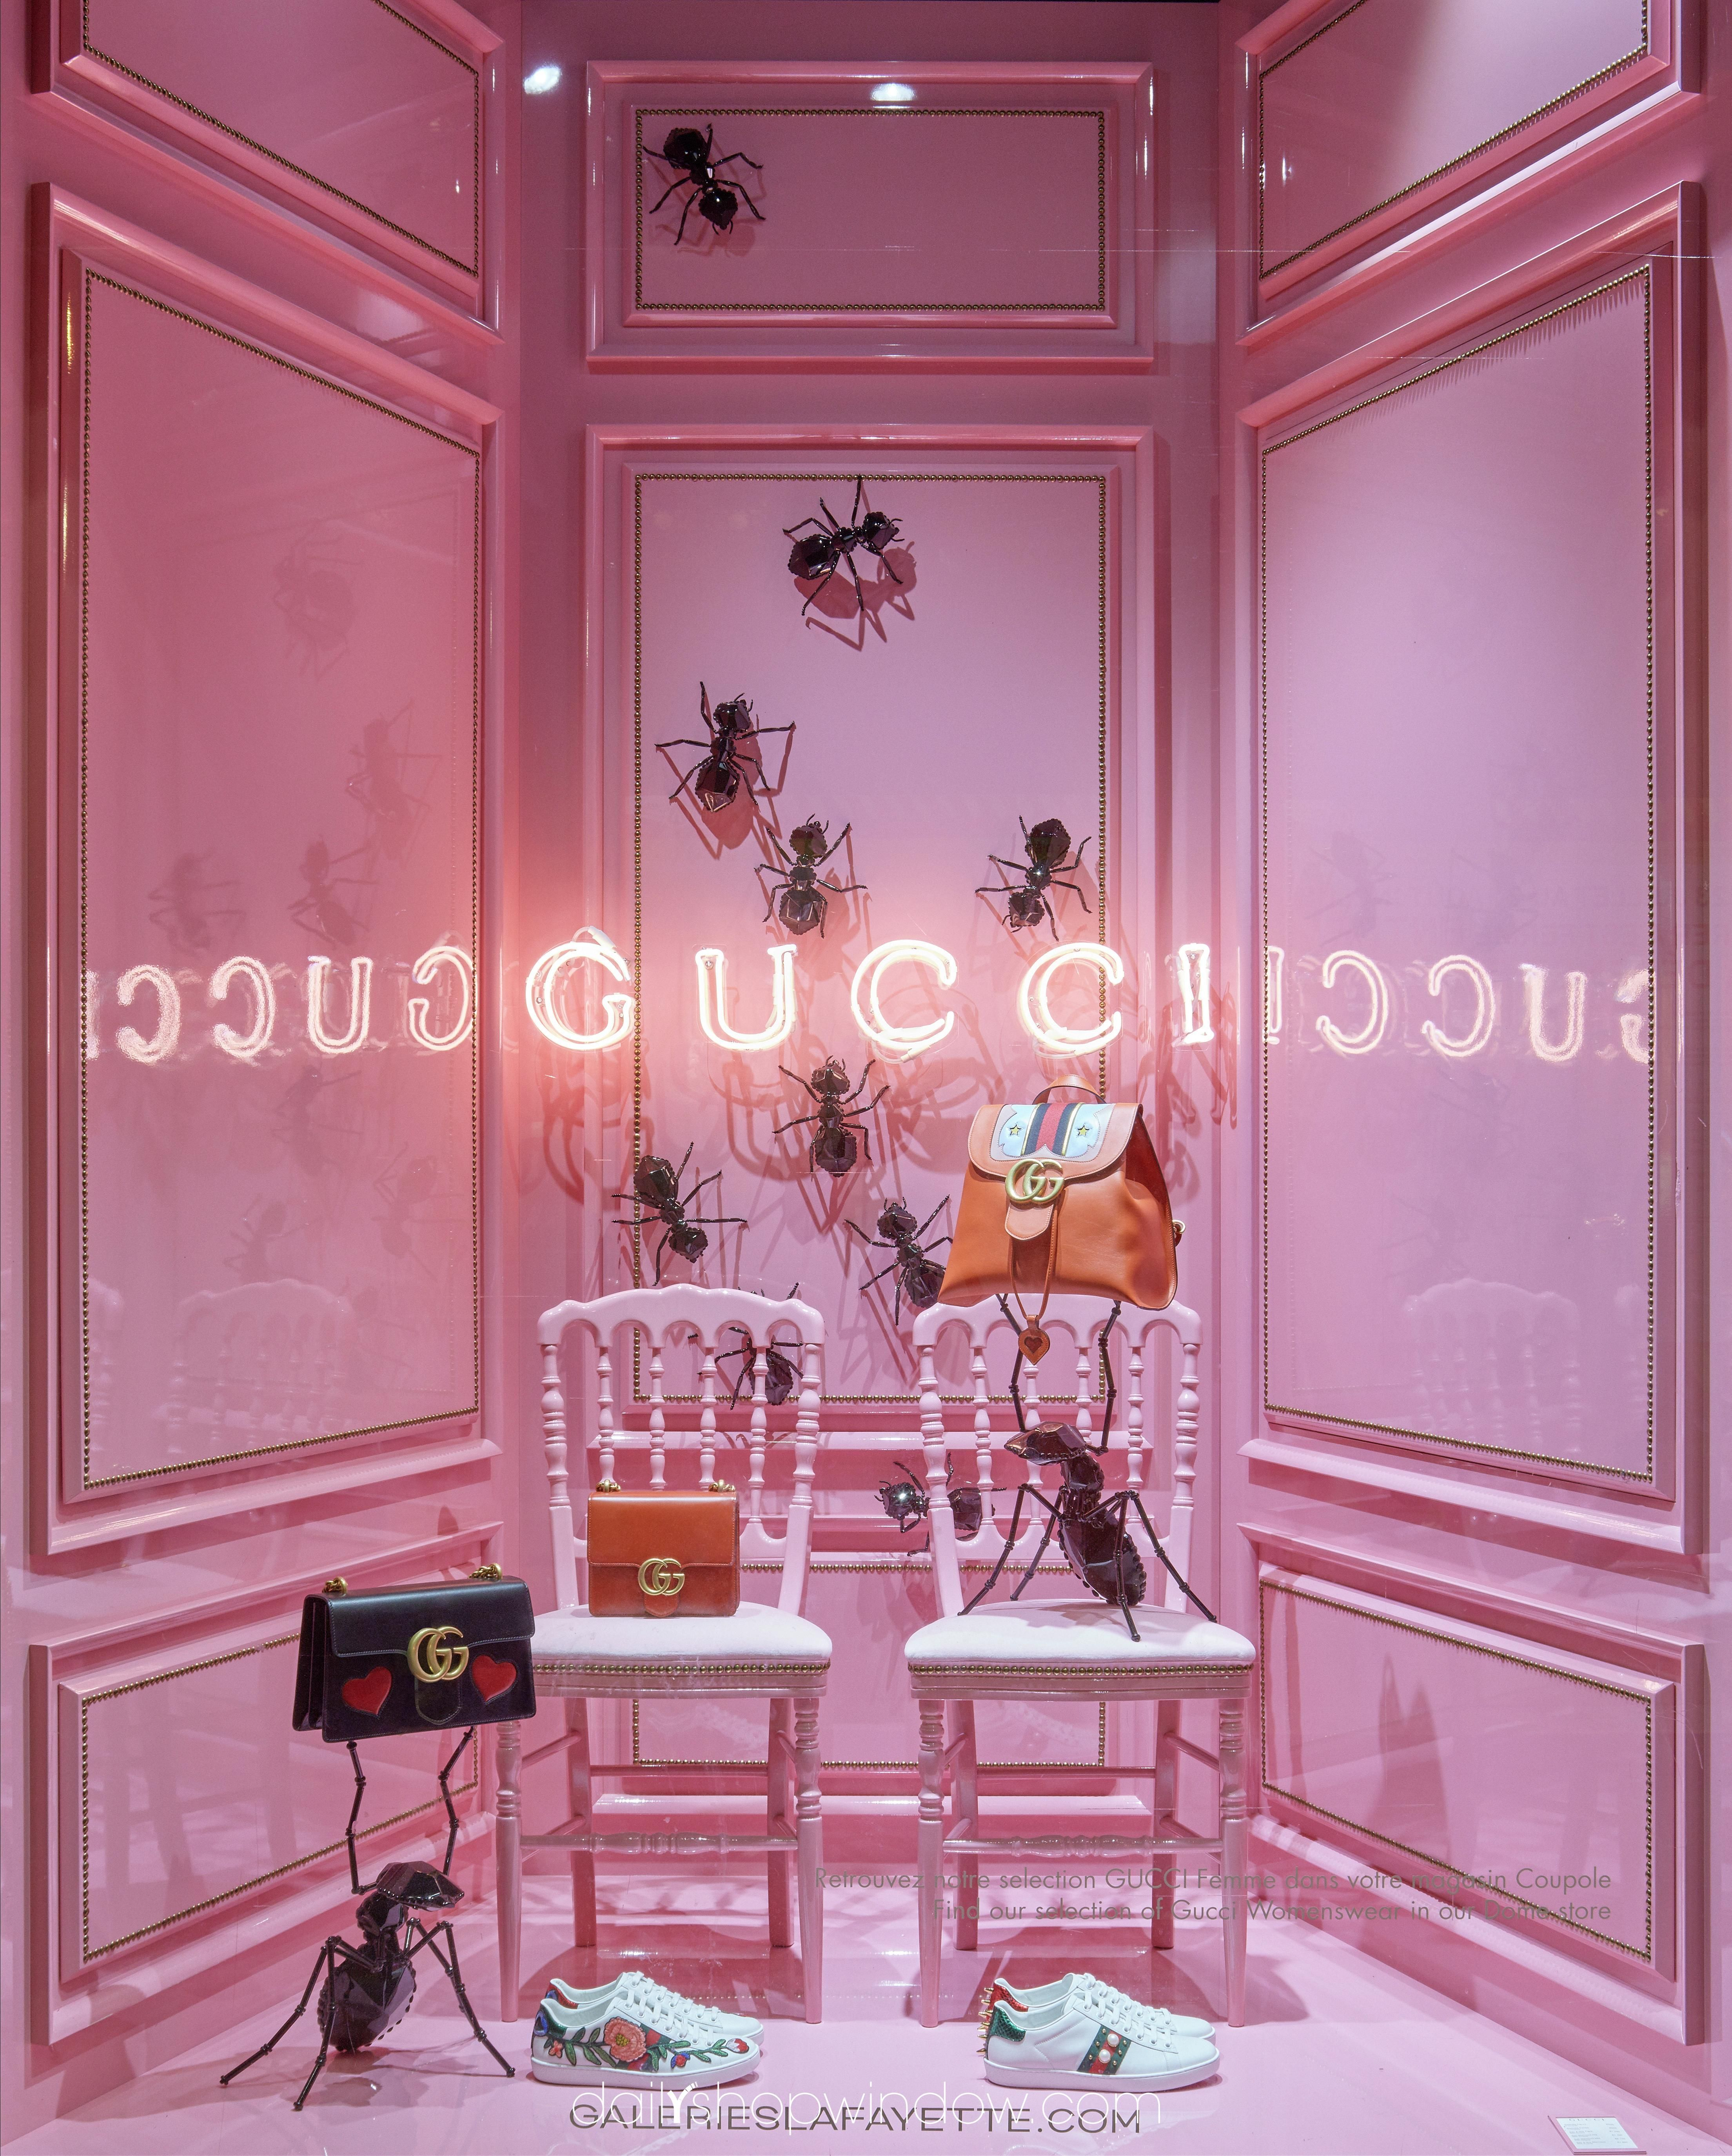 d8a396cb4 Reflexion and Ants at Les Galeries Lafayette by Gucci, August 2016, Paris